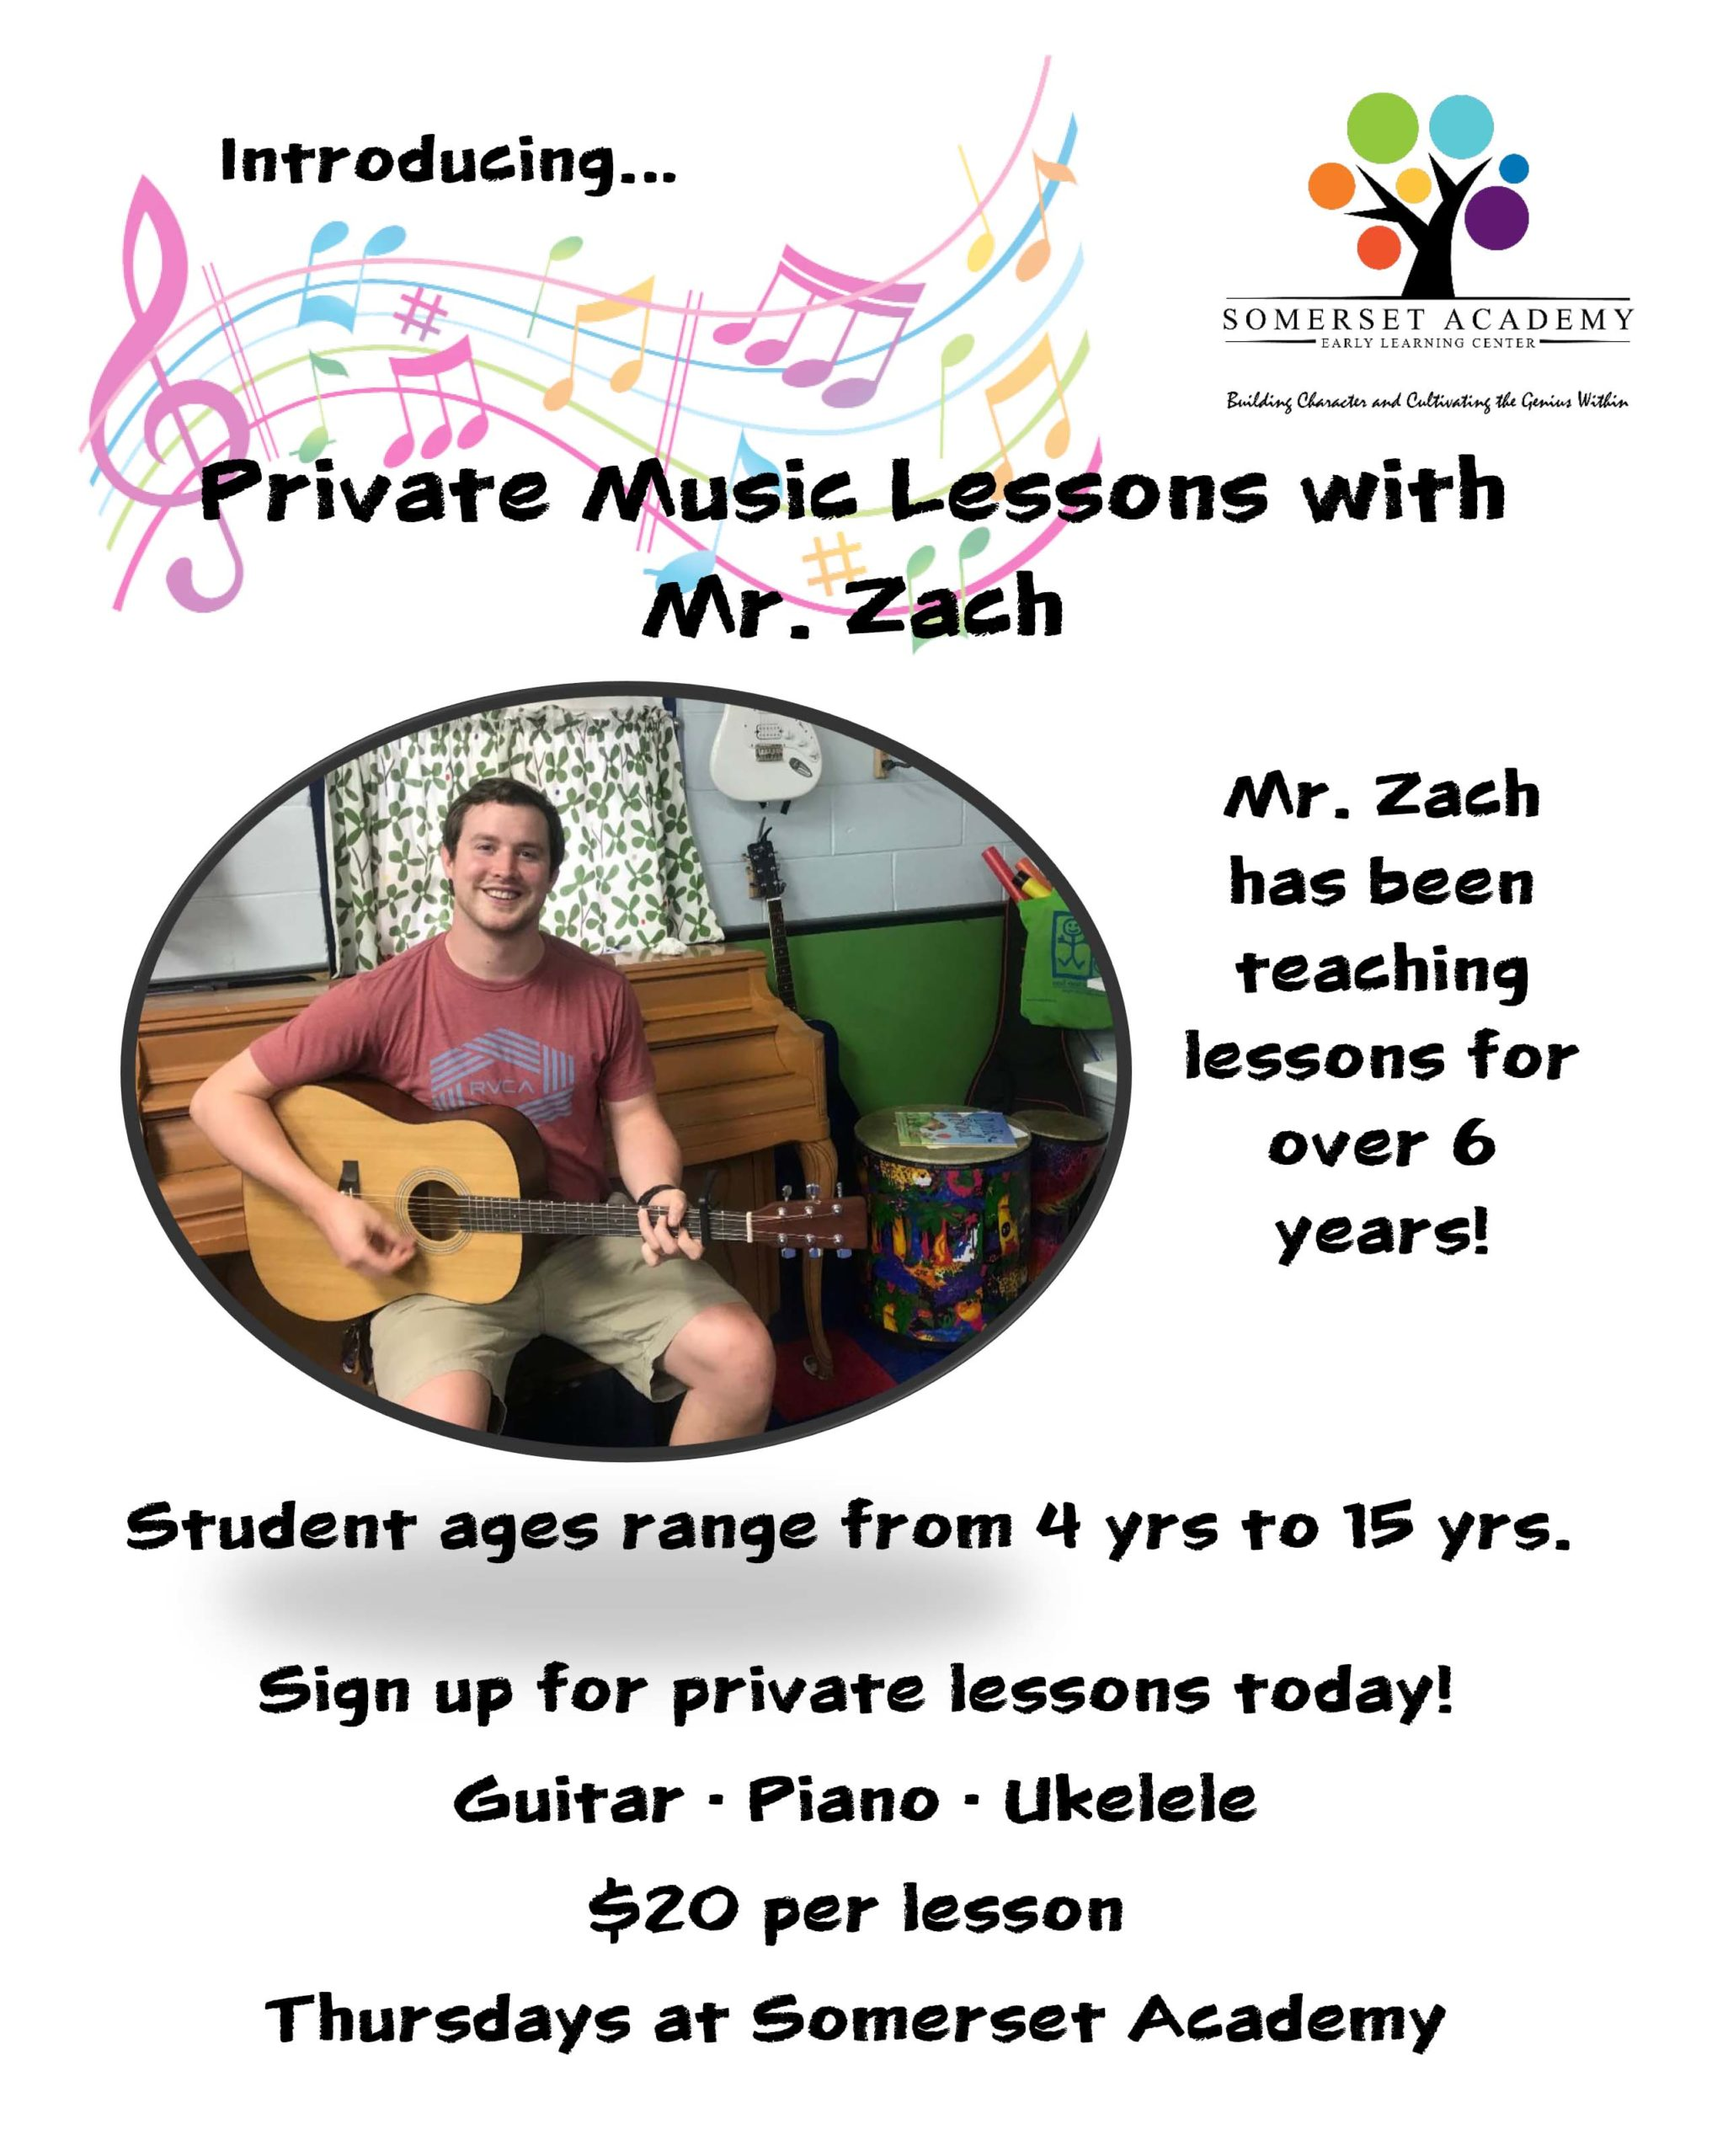 Flyer for private music lessons at Somerset Academy Early Learning Center for children ages 4-15 in Philadelphia